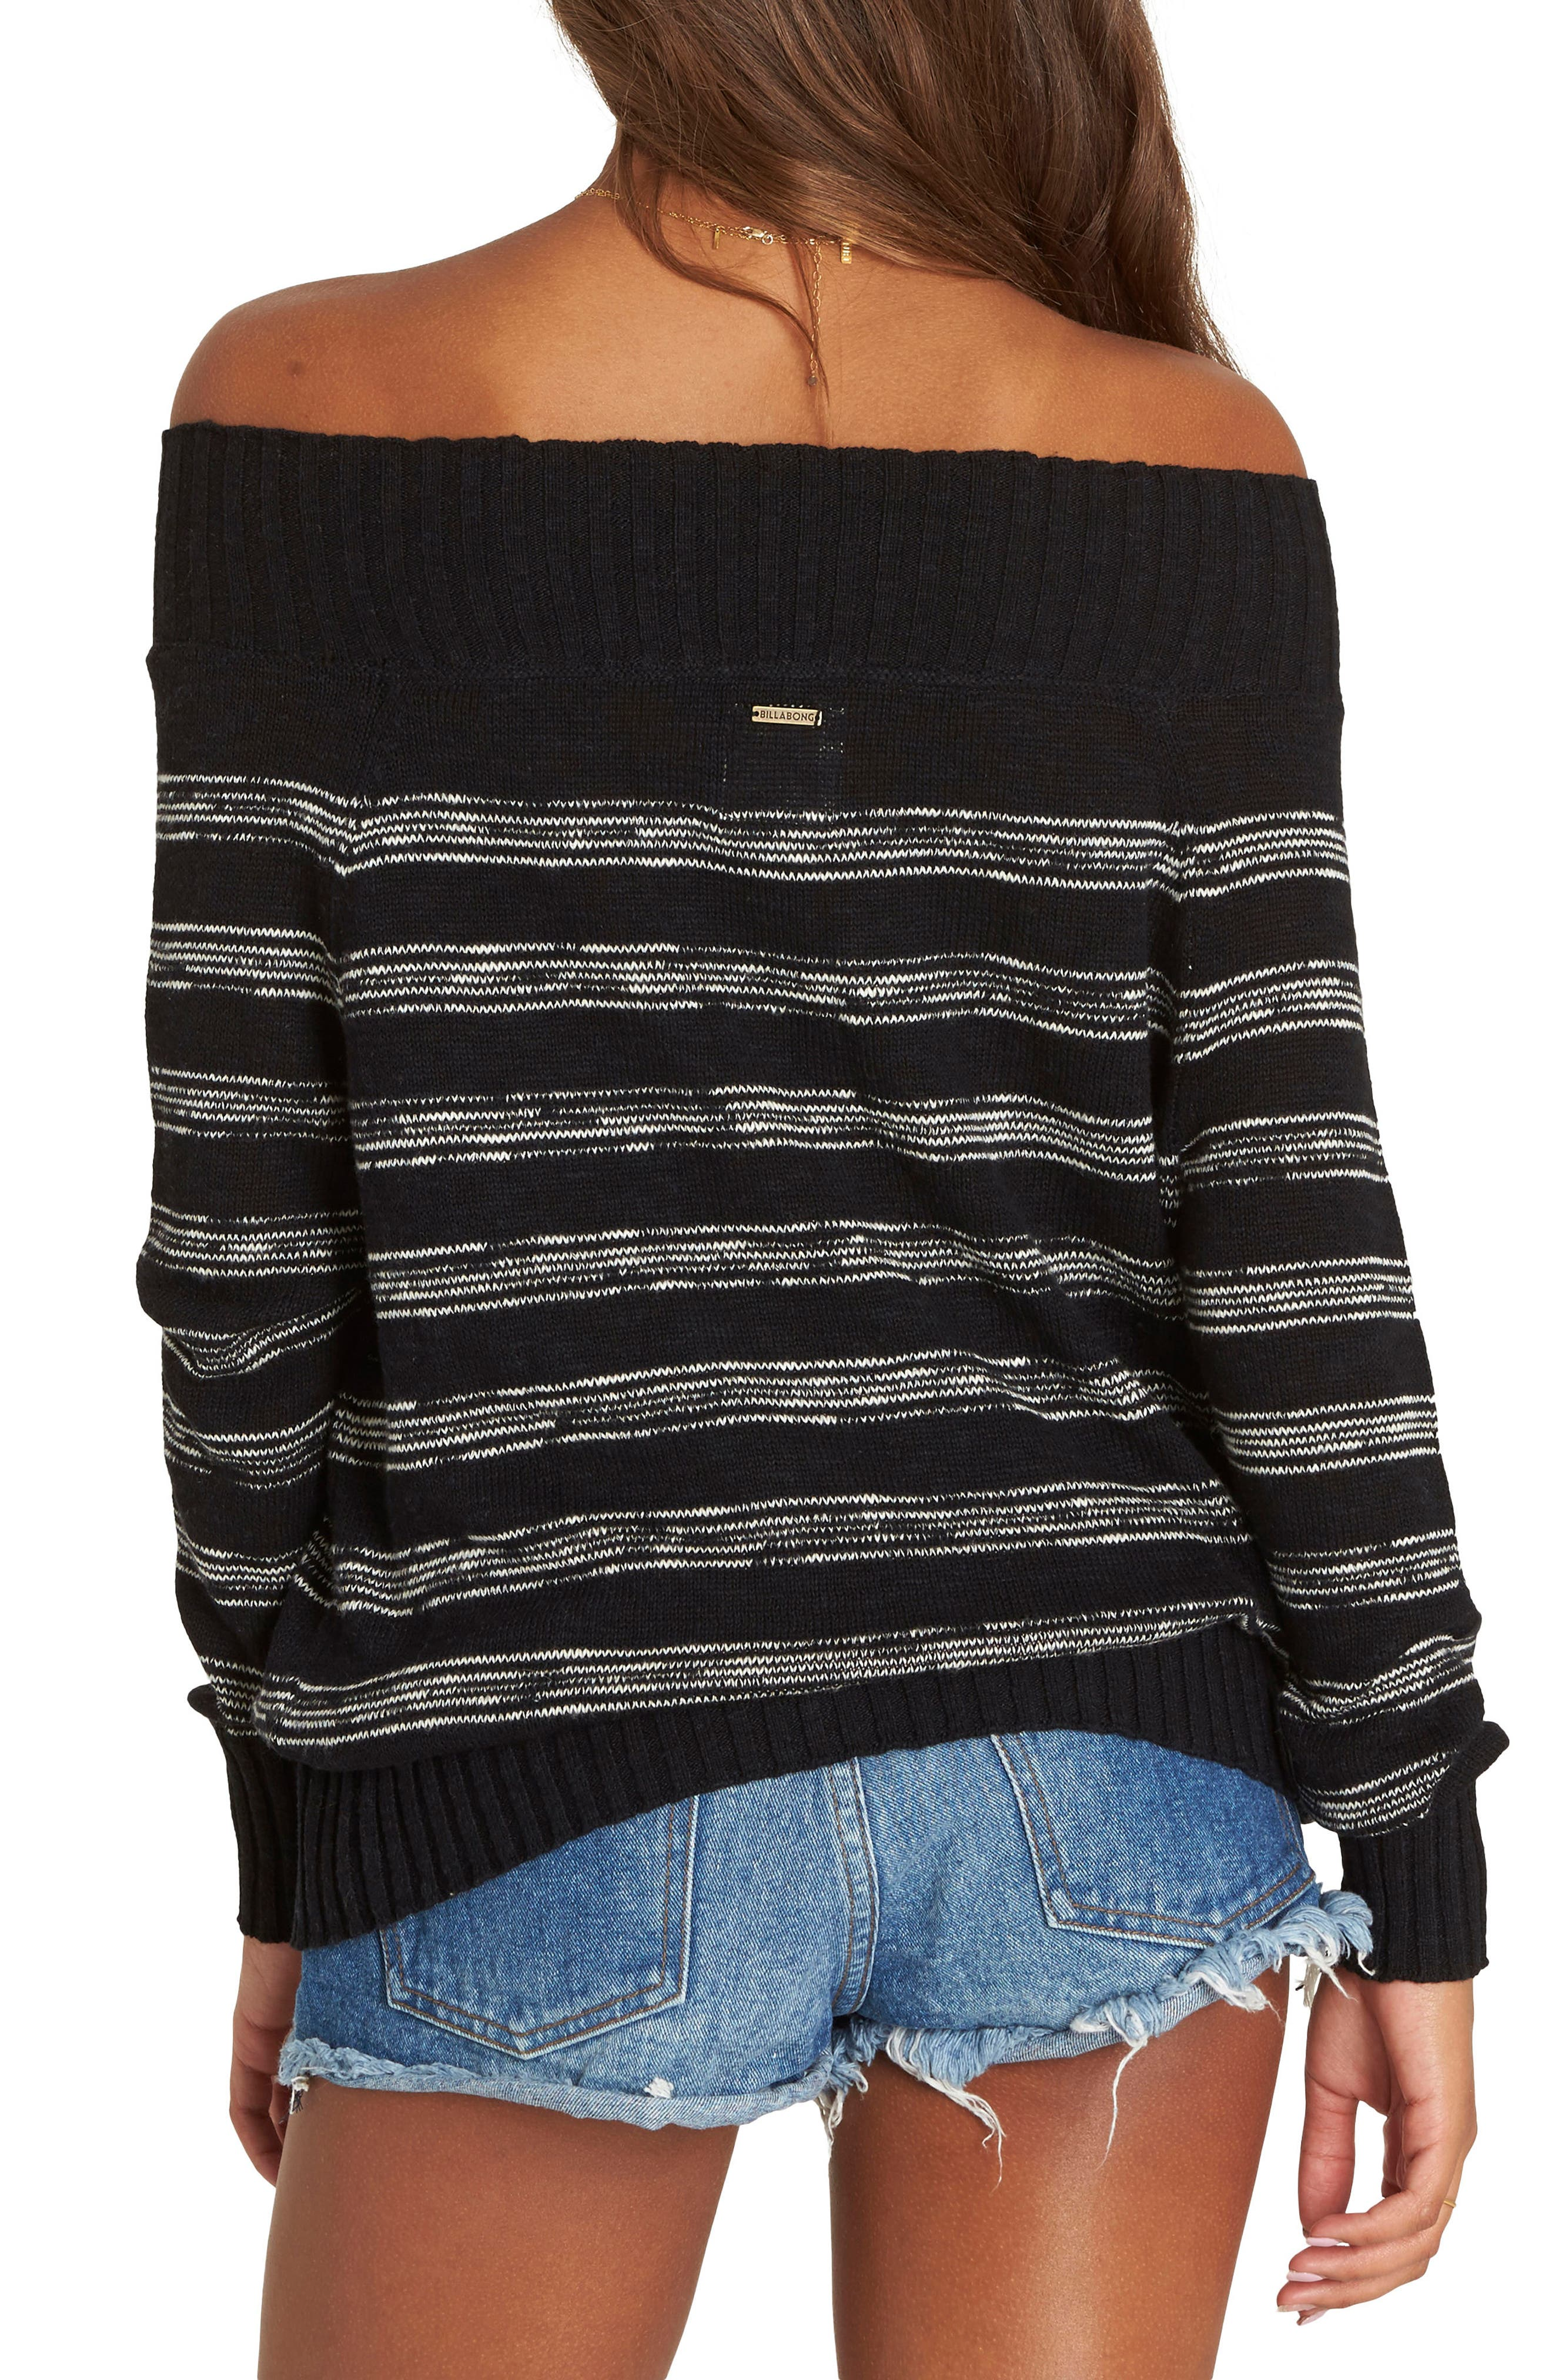 Snuggle Down Off the Shoulder Sweater,                             Alternate thumbnail 2, color,                             001